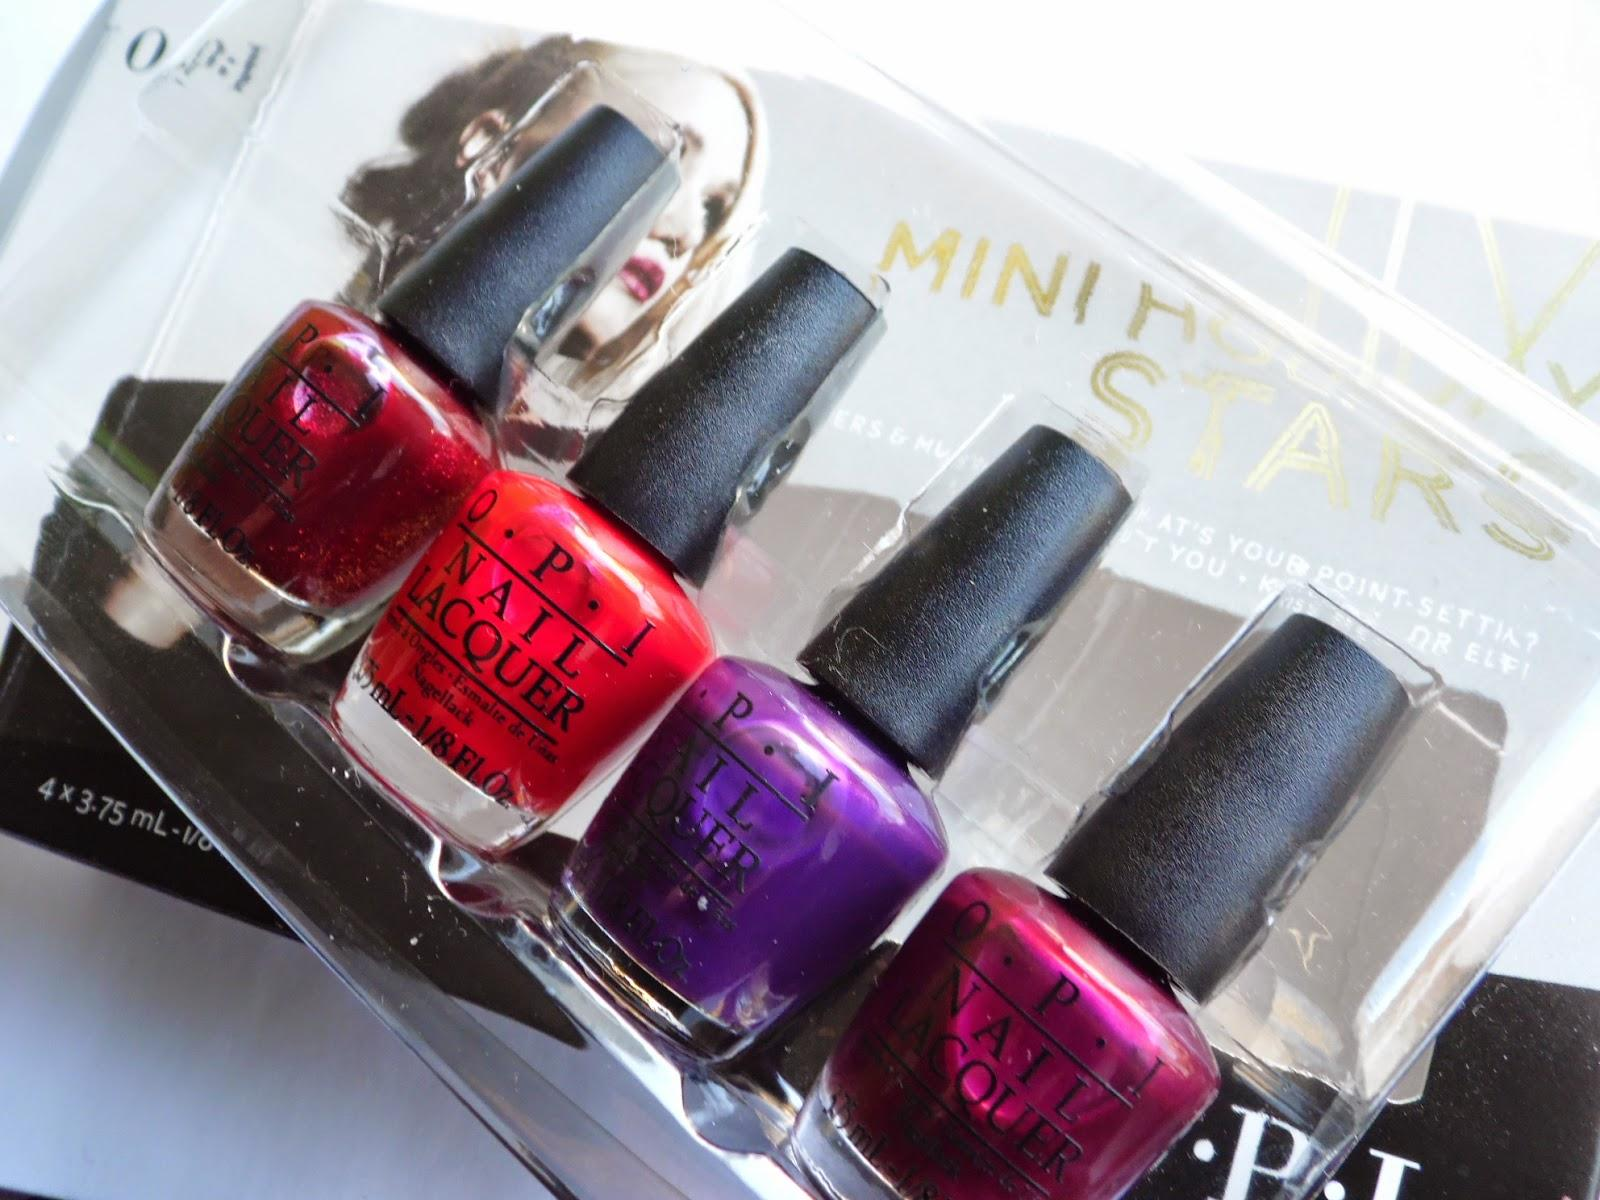 OPI Gwen Stefani Holiday Collection 2014